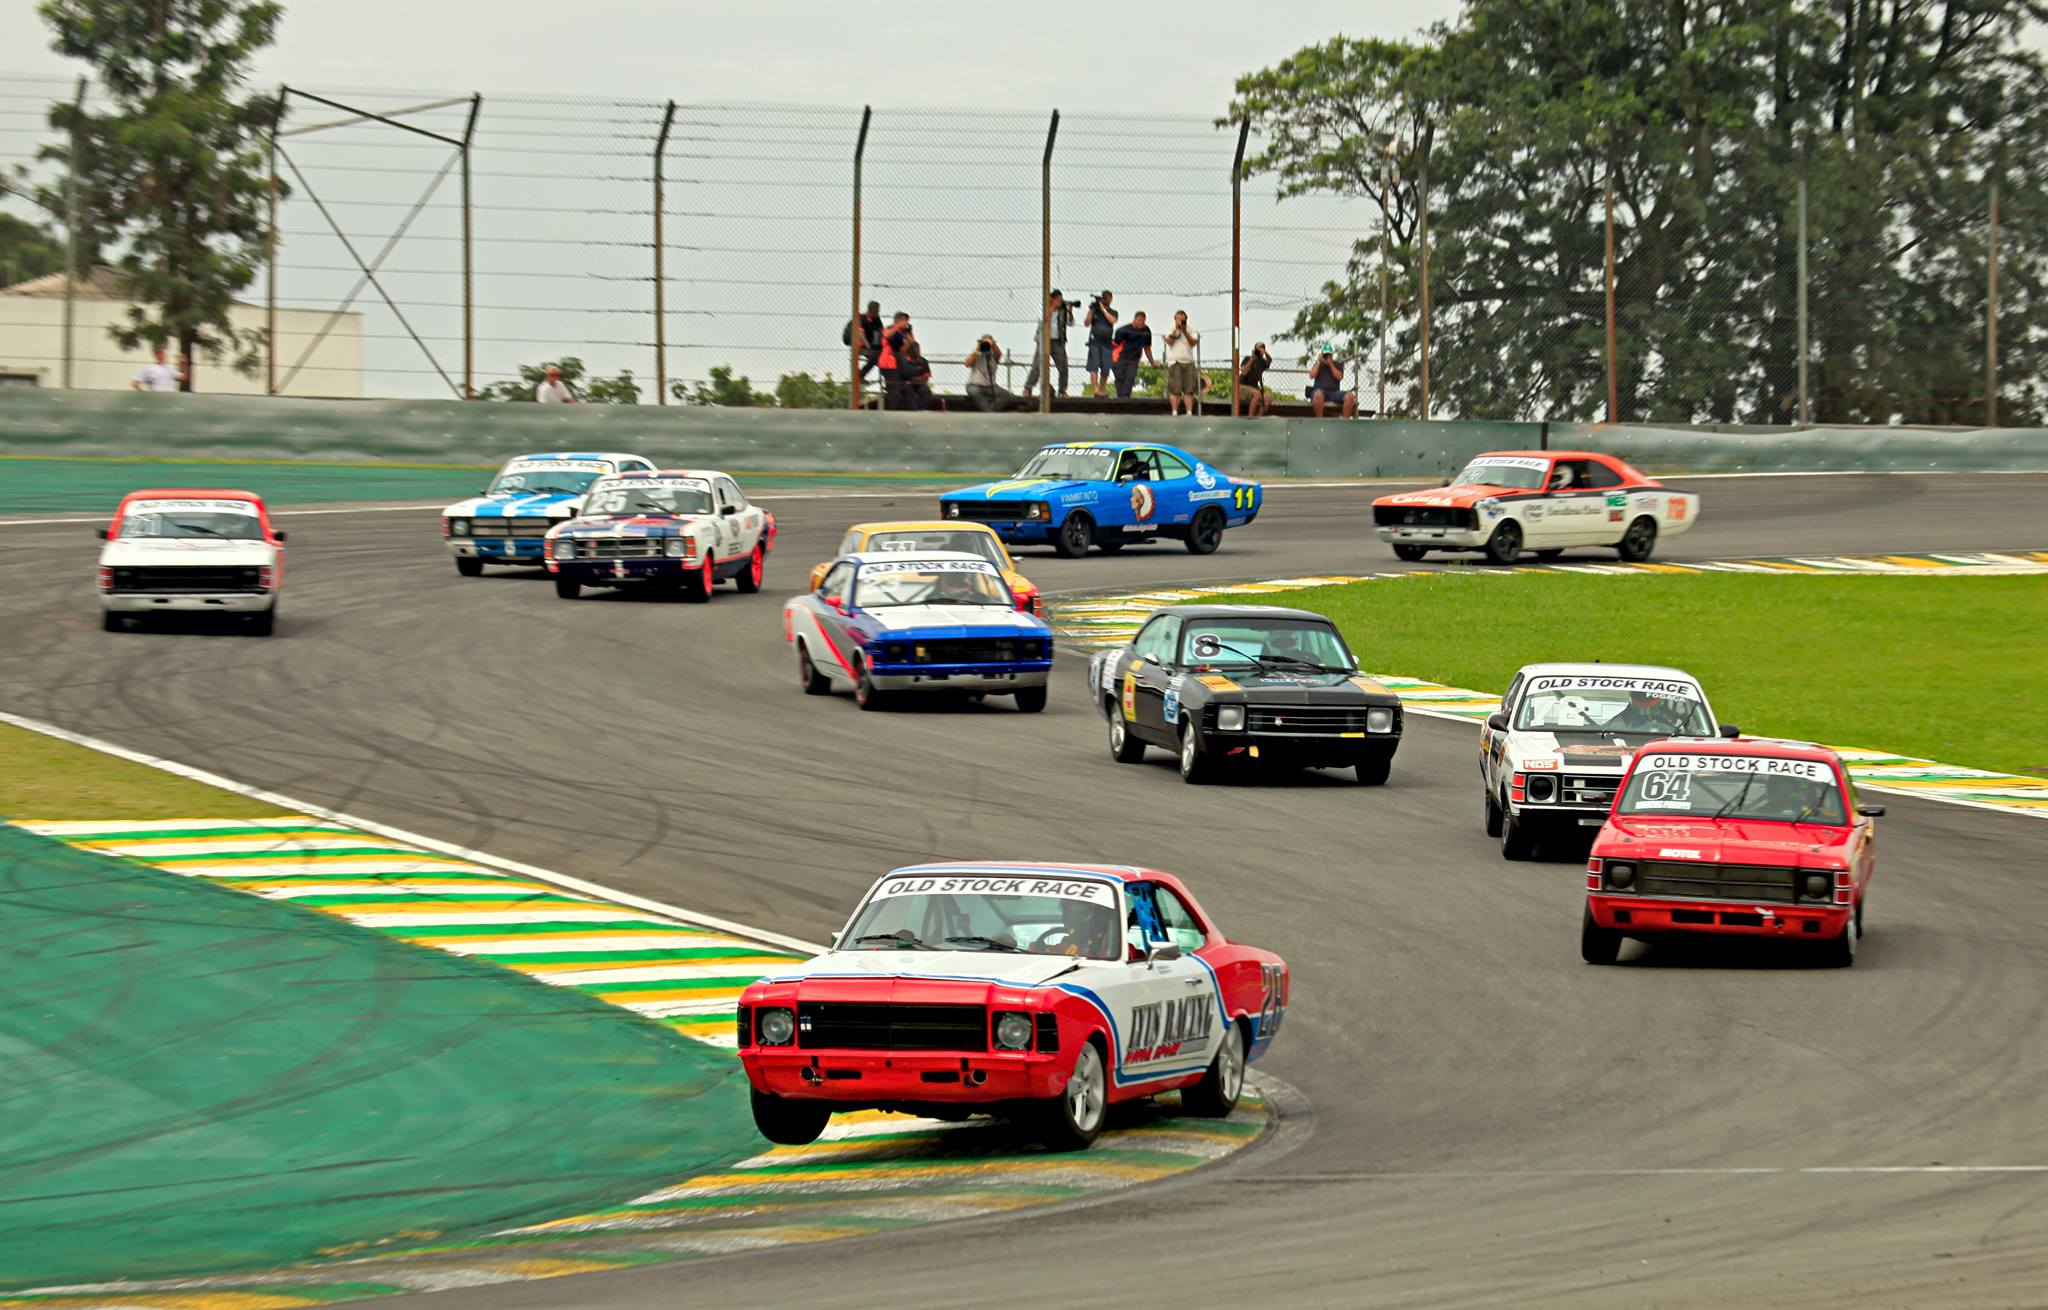 Old Stock Race - Prova Inaugural em Interlagos - 20/12/2015